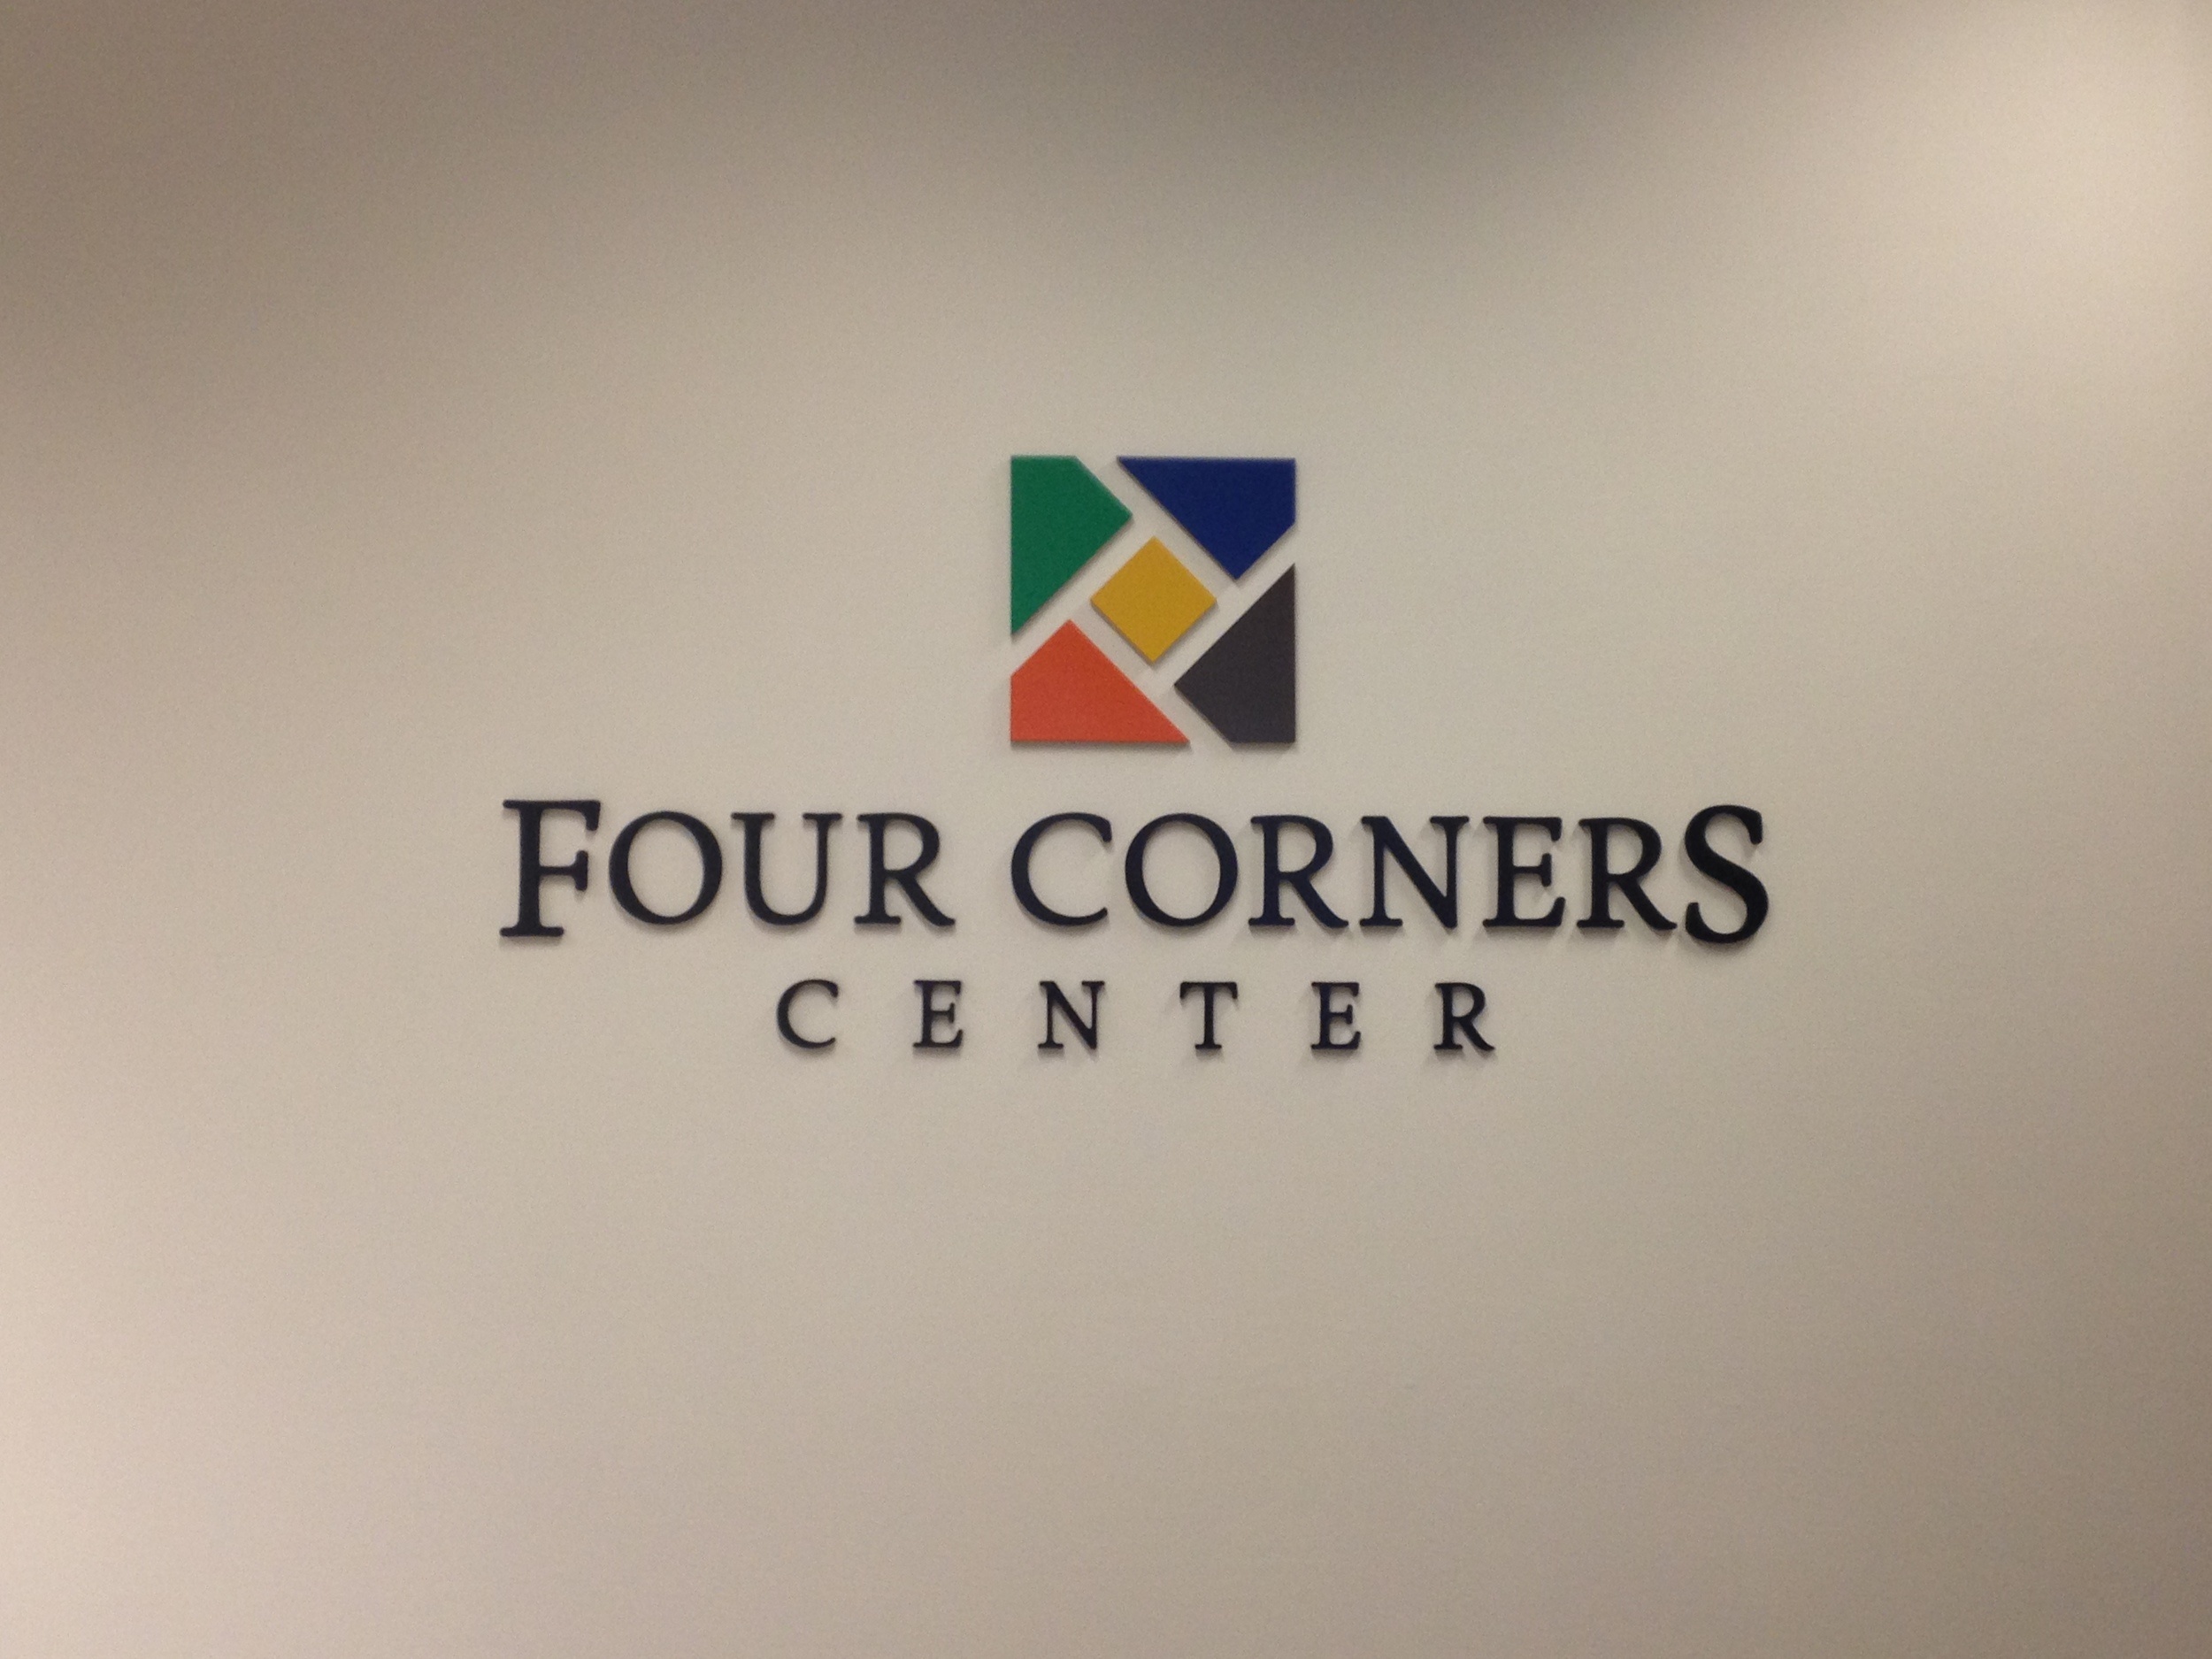 Four Corners Center